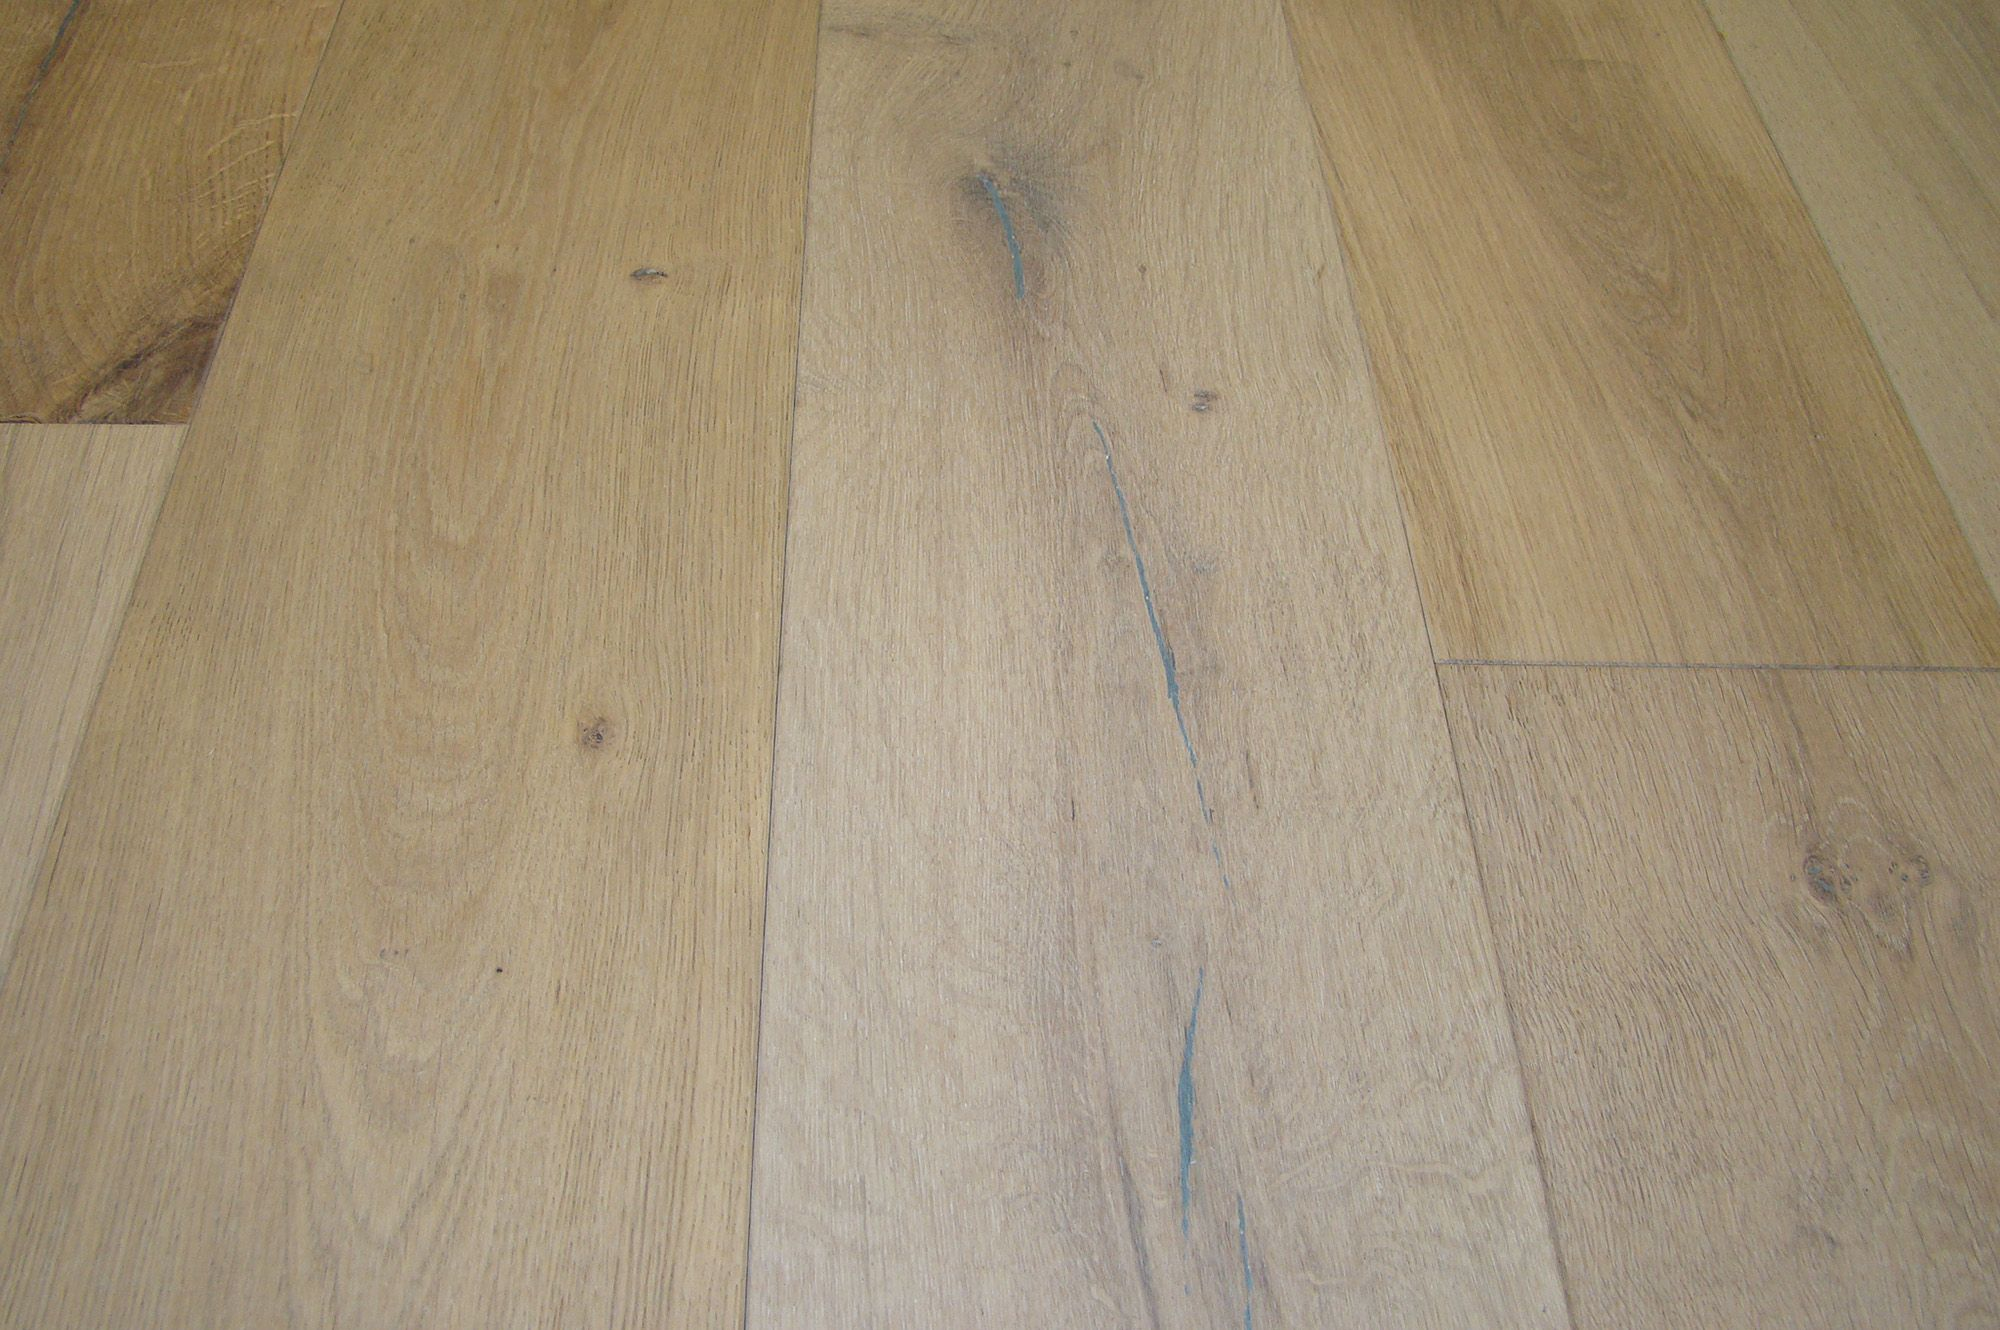 engineered hardwood - baltic oak collection - sedona silver / oak